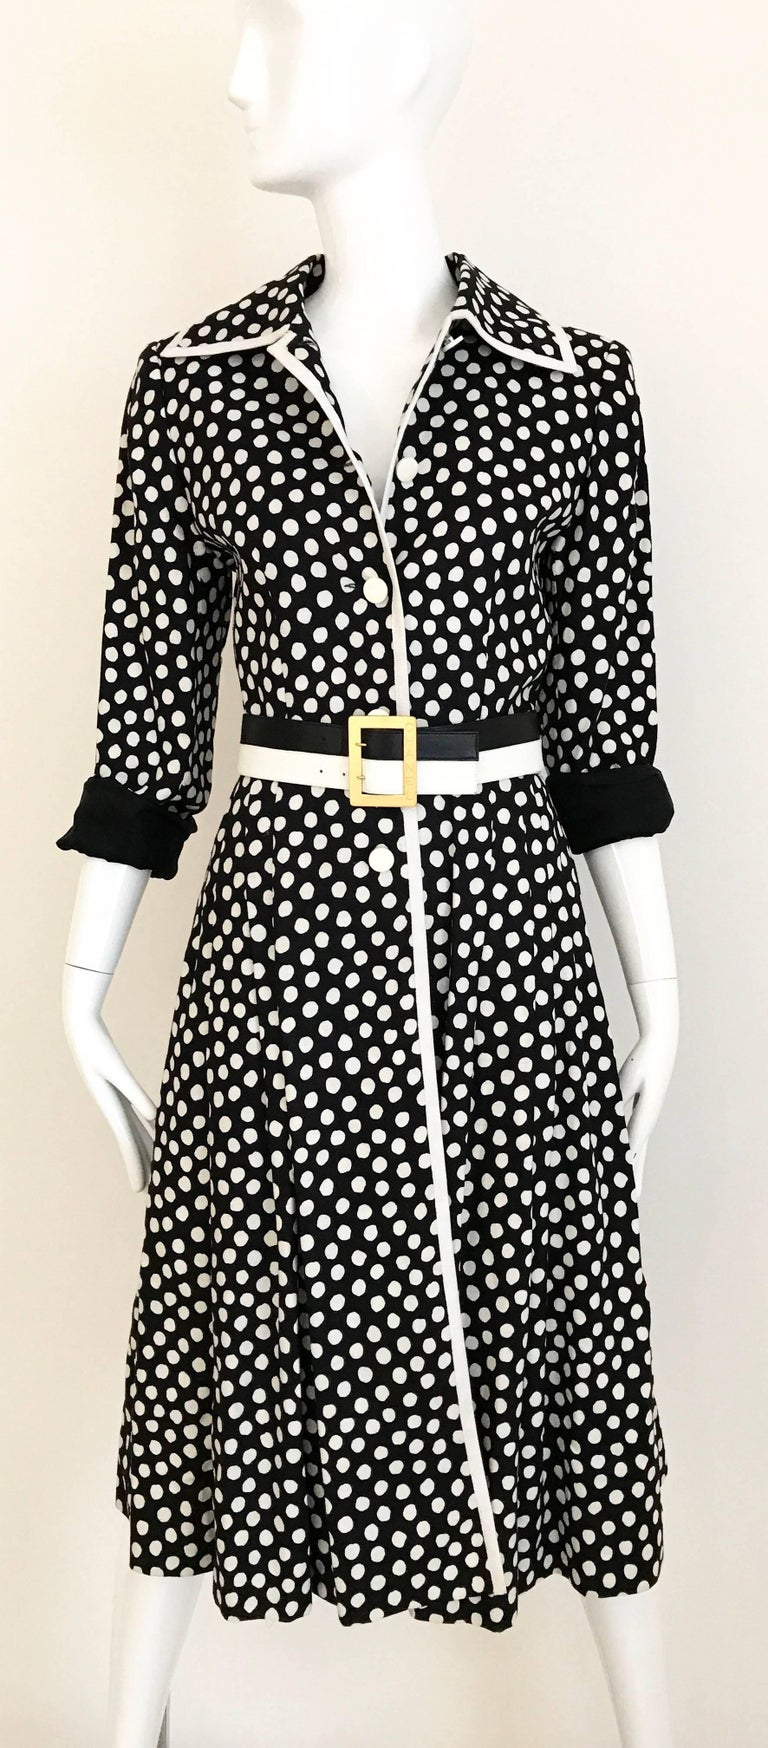 Vintage 1970s GIVENCHY Nouvelle Boutique black and White dot coat dress. 5 acrylic Button in the front and pleated skirt. Coat is made on linen and lined in silk. You can wear this as a dress. Coat has 2 side pockets. Coat is styled with Vintage